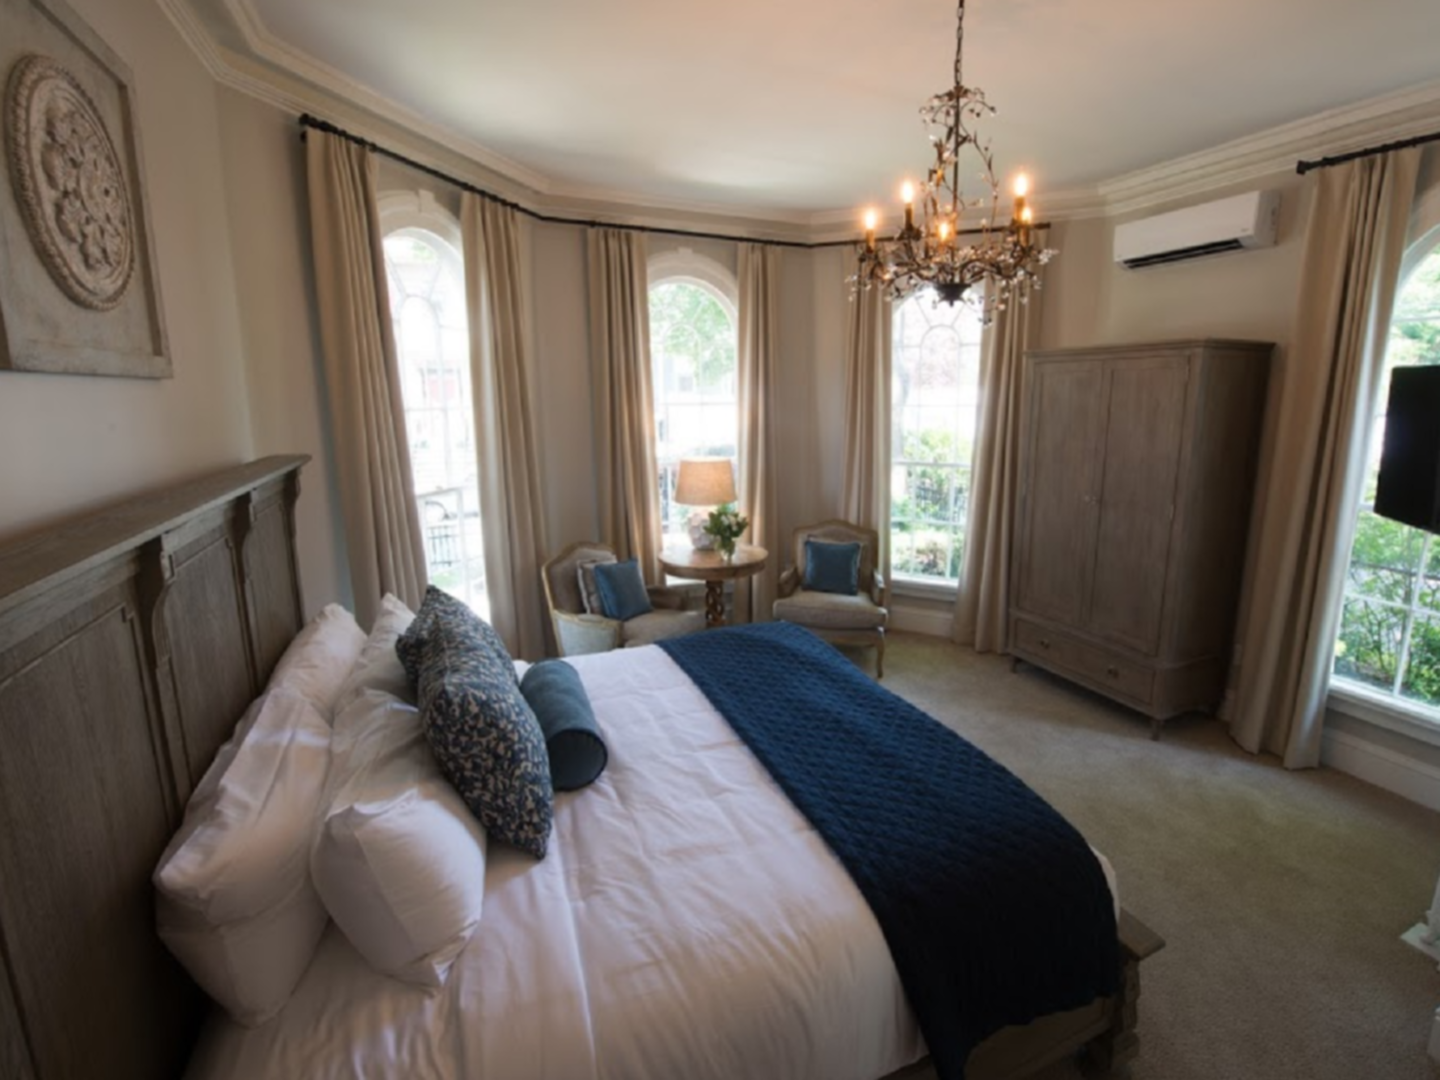 A bedroom with a bed and a chair in front of a window at Adele Turner Inn.